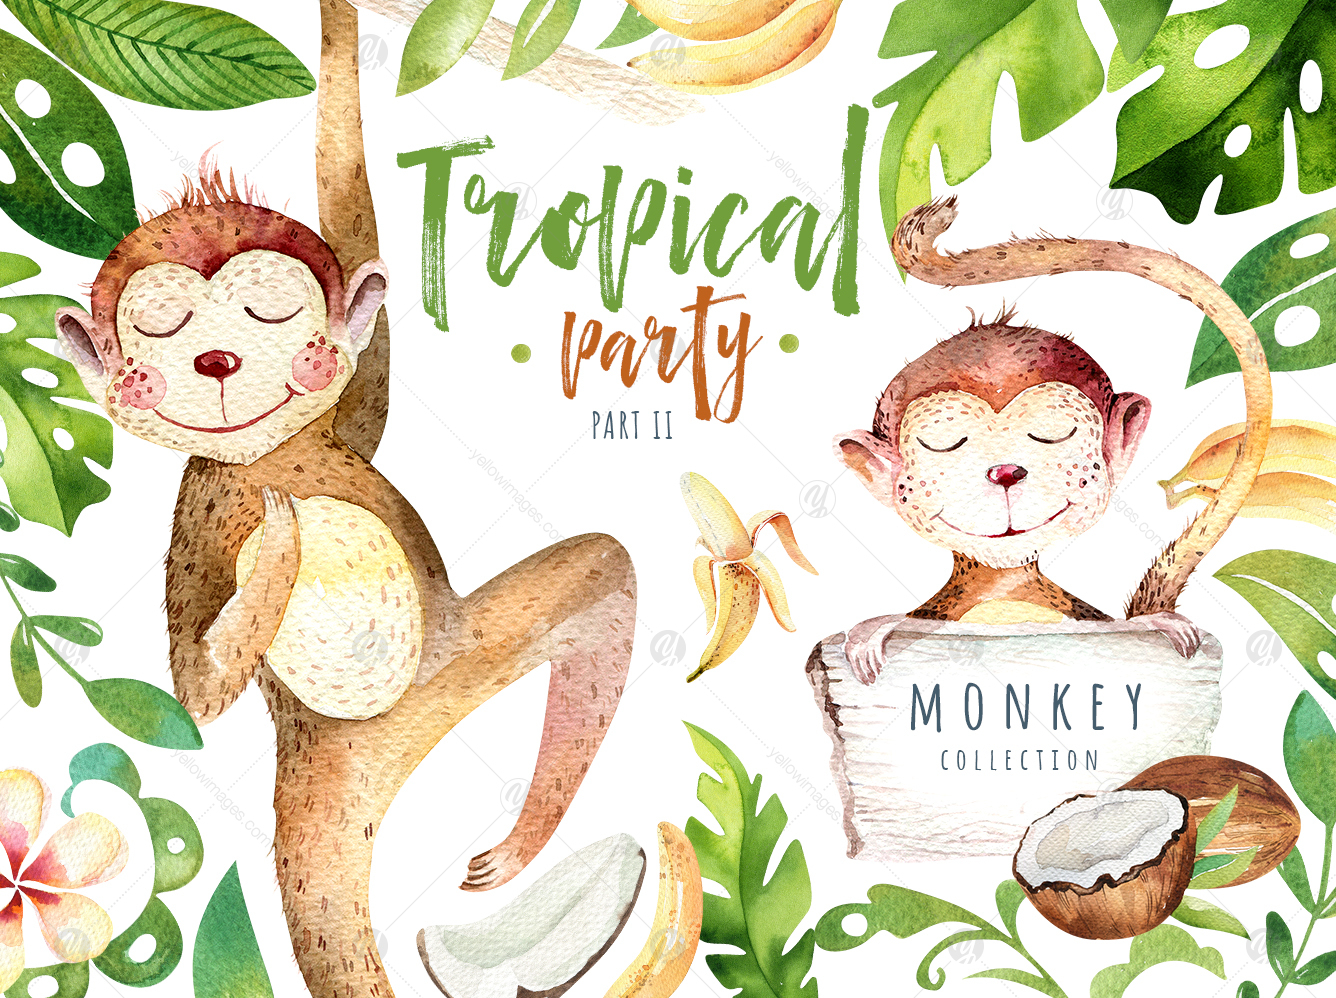 Tropical party II. Monkey collection